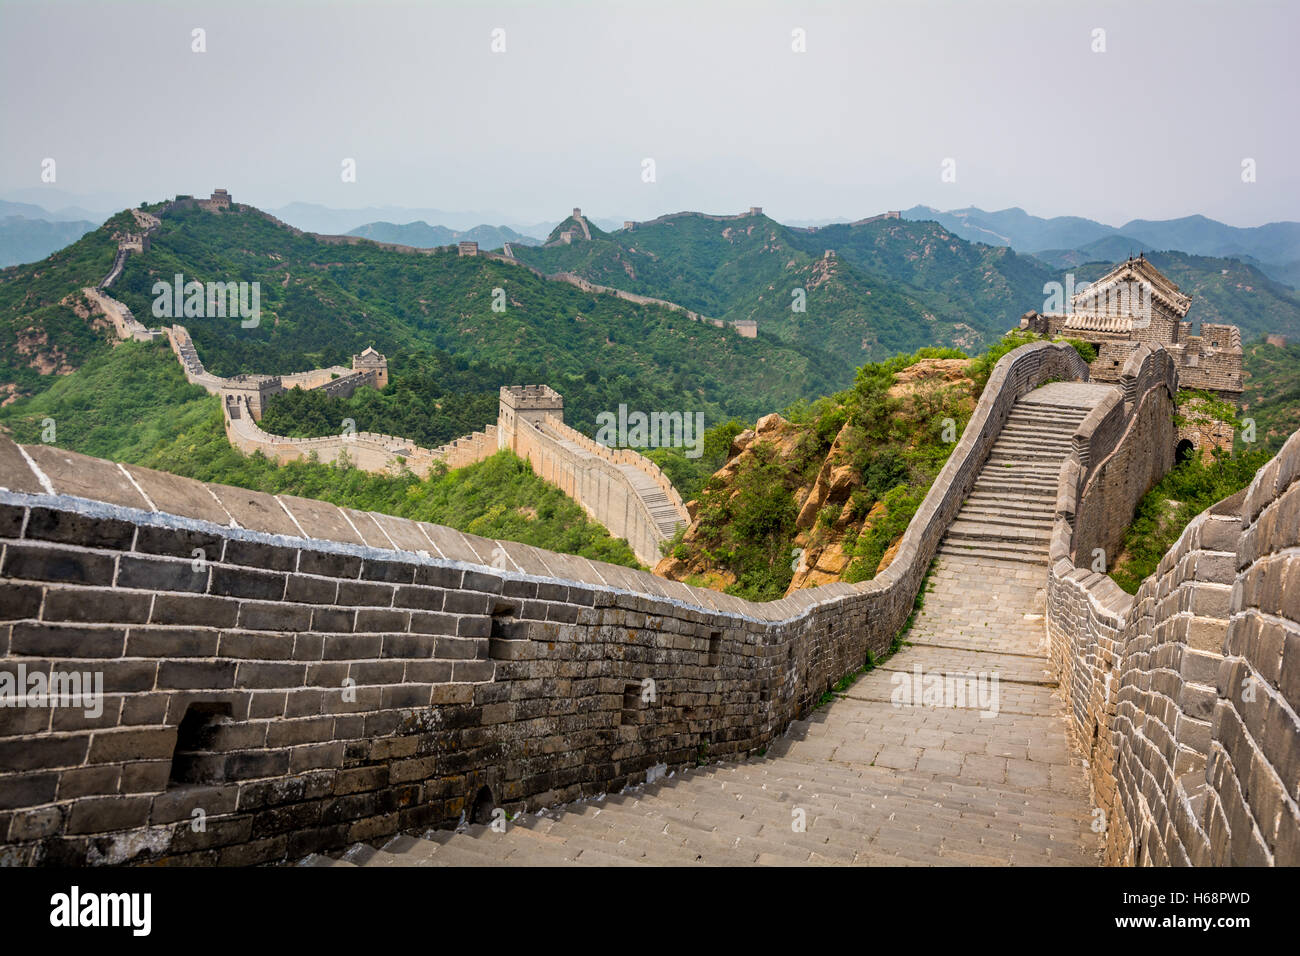 China Great Wall, Pechino Immagini Stock